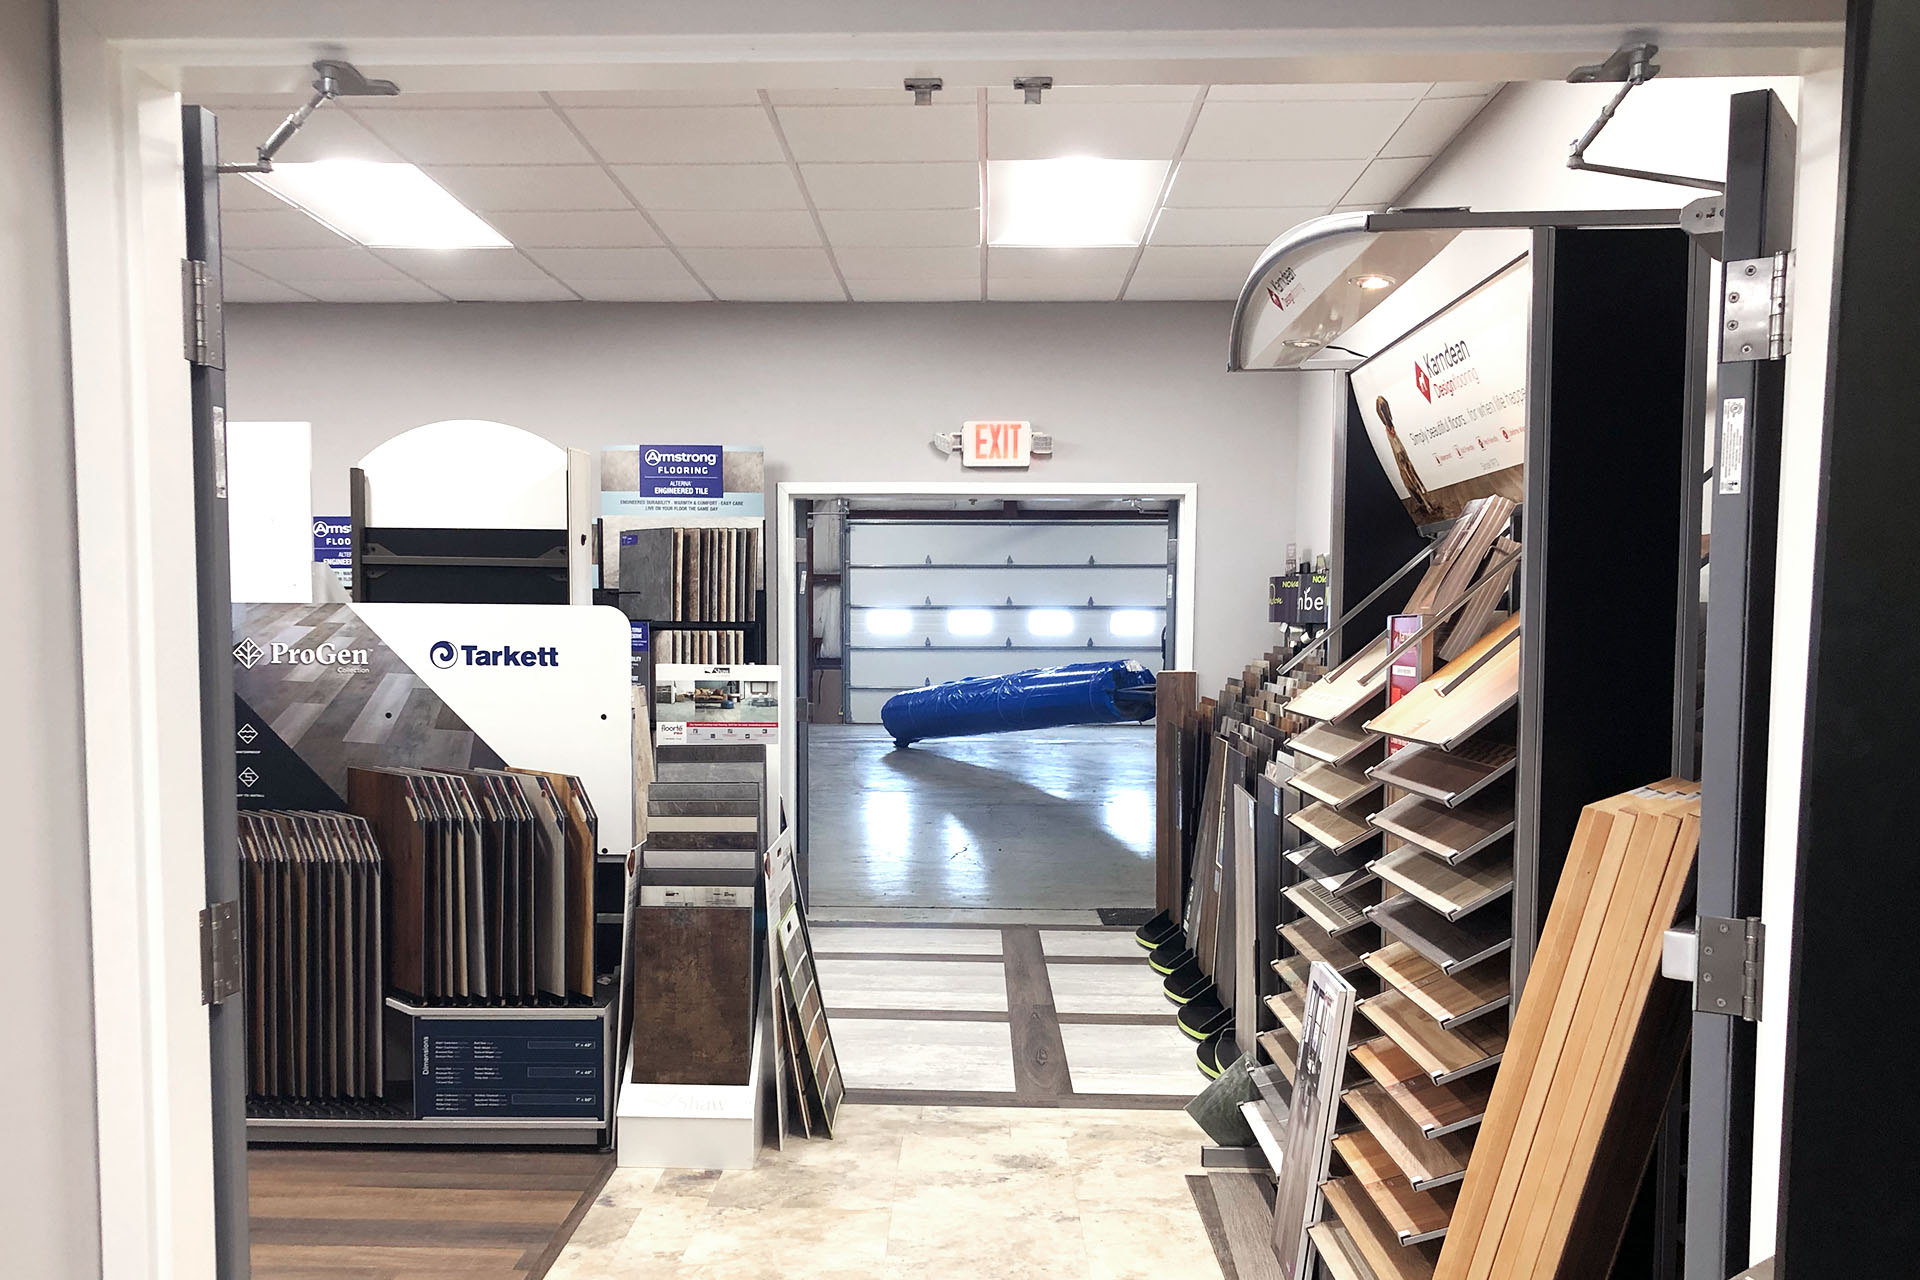 6712-2-after-vinyl-showroom-March-2019-dandsflooring.jpg